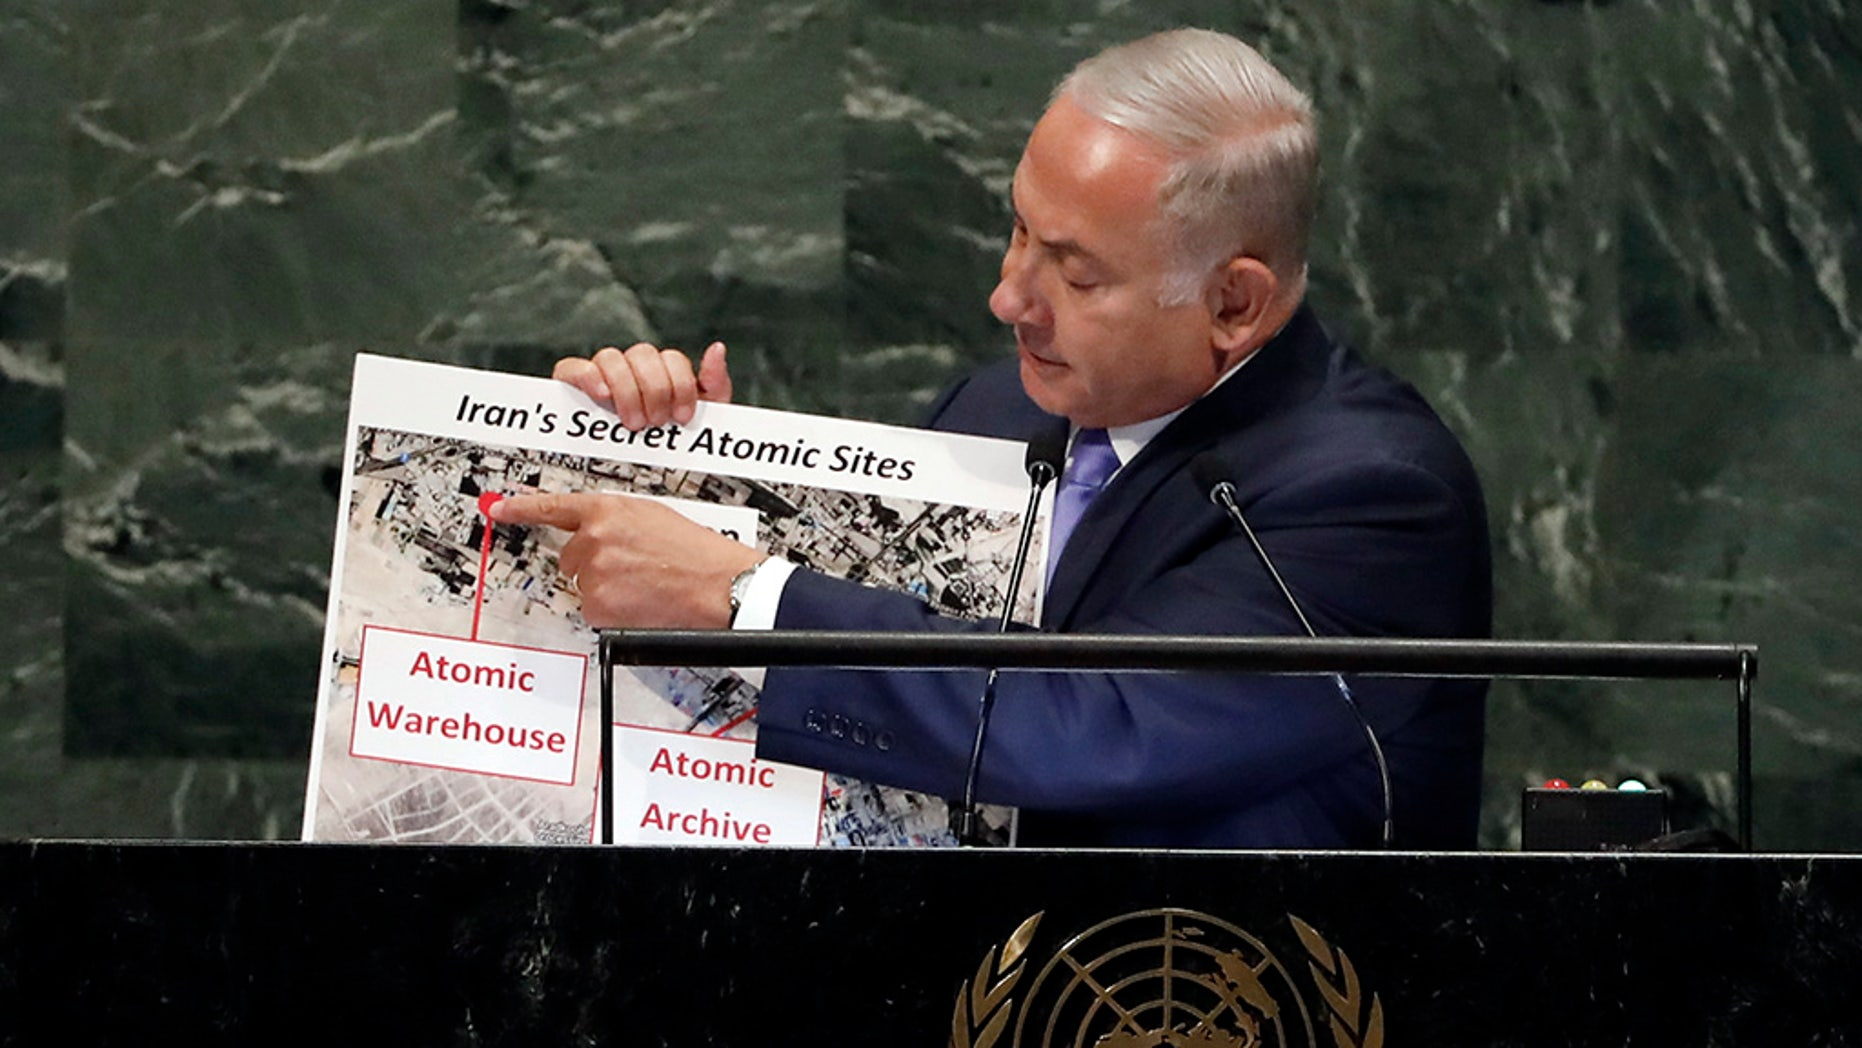 Israel's Prime Minister Benjamin Netanyahu shows an atomic warehouse in Tehran during his address at the 73rd session of the United Nations General Assembly on Thursday.